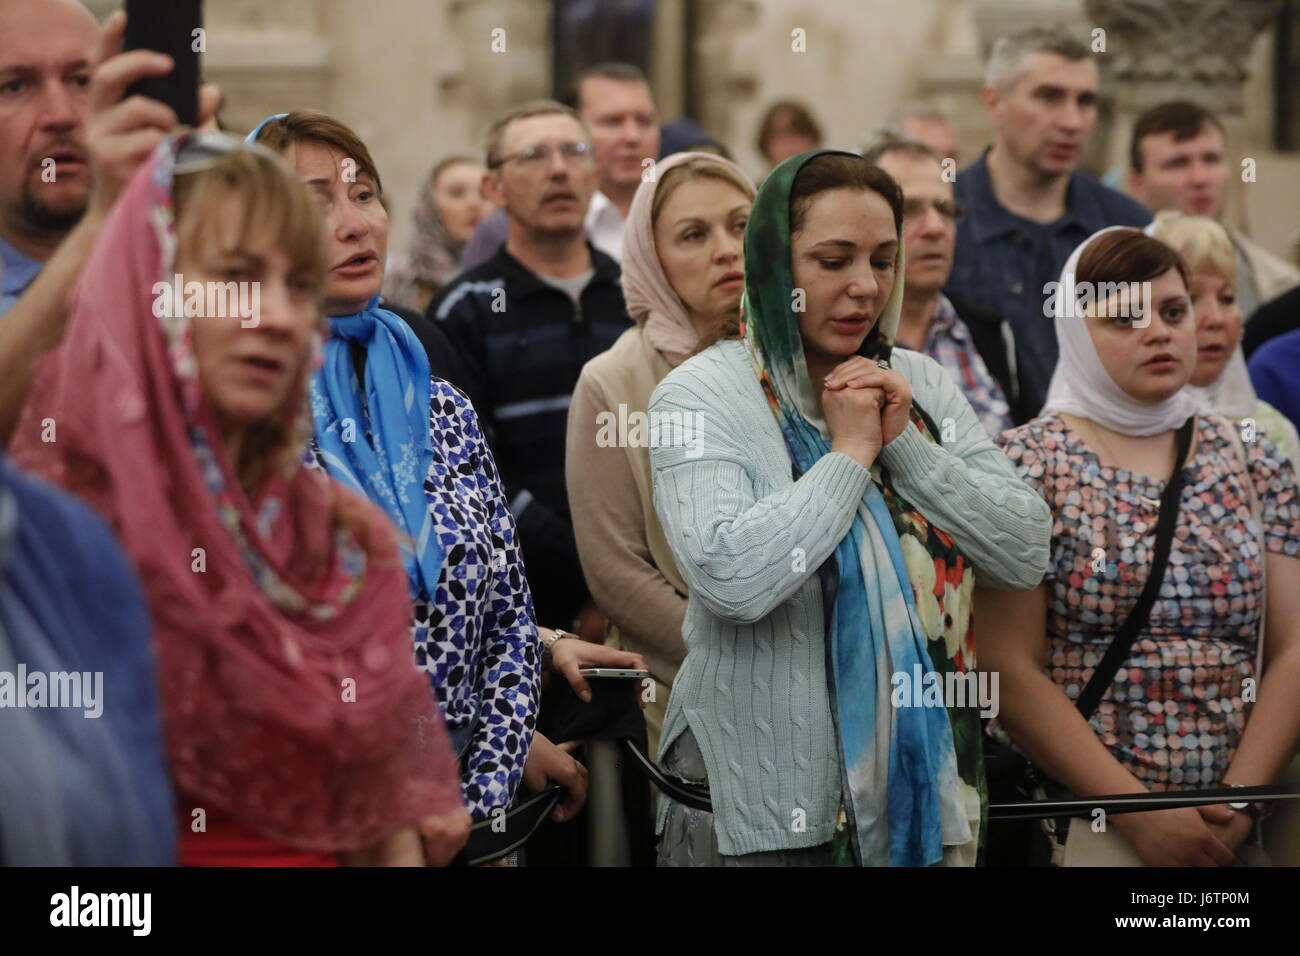 Bari, Italy. 21st May, 2017. Believers seen during a liturgy at the Basilica of Saint Nicholas ahead of sending - Stock Image